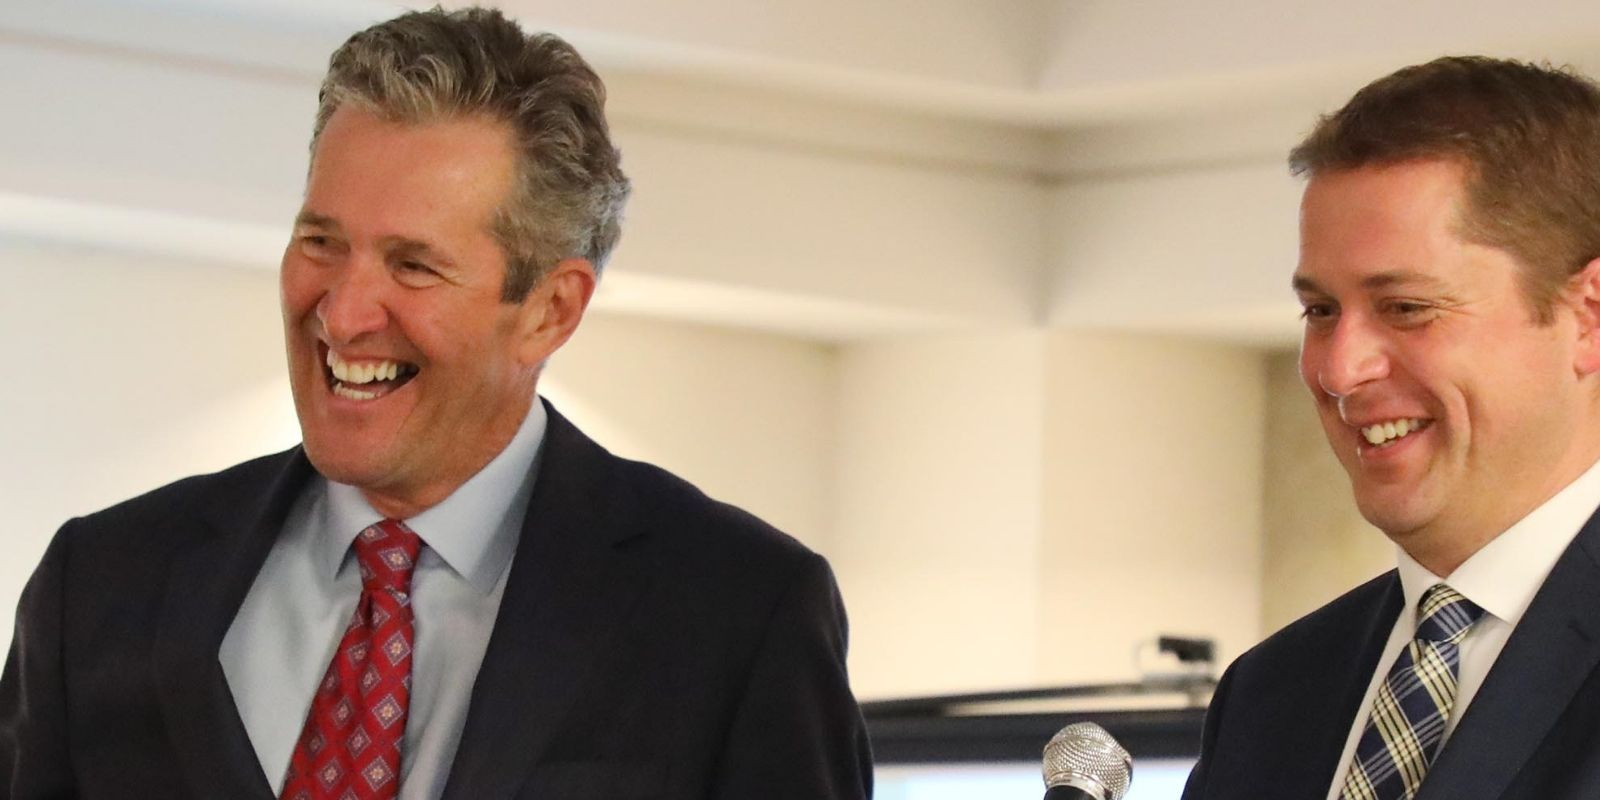 Manitoba re-elects a Conservative majority government